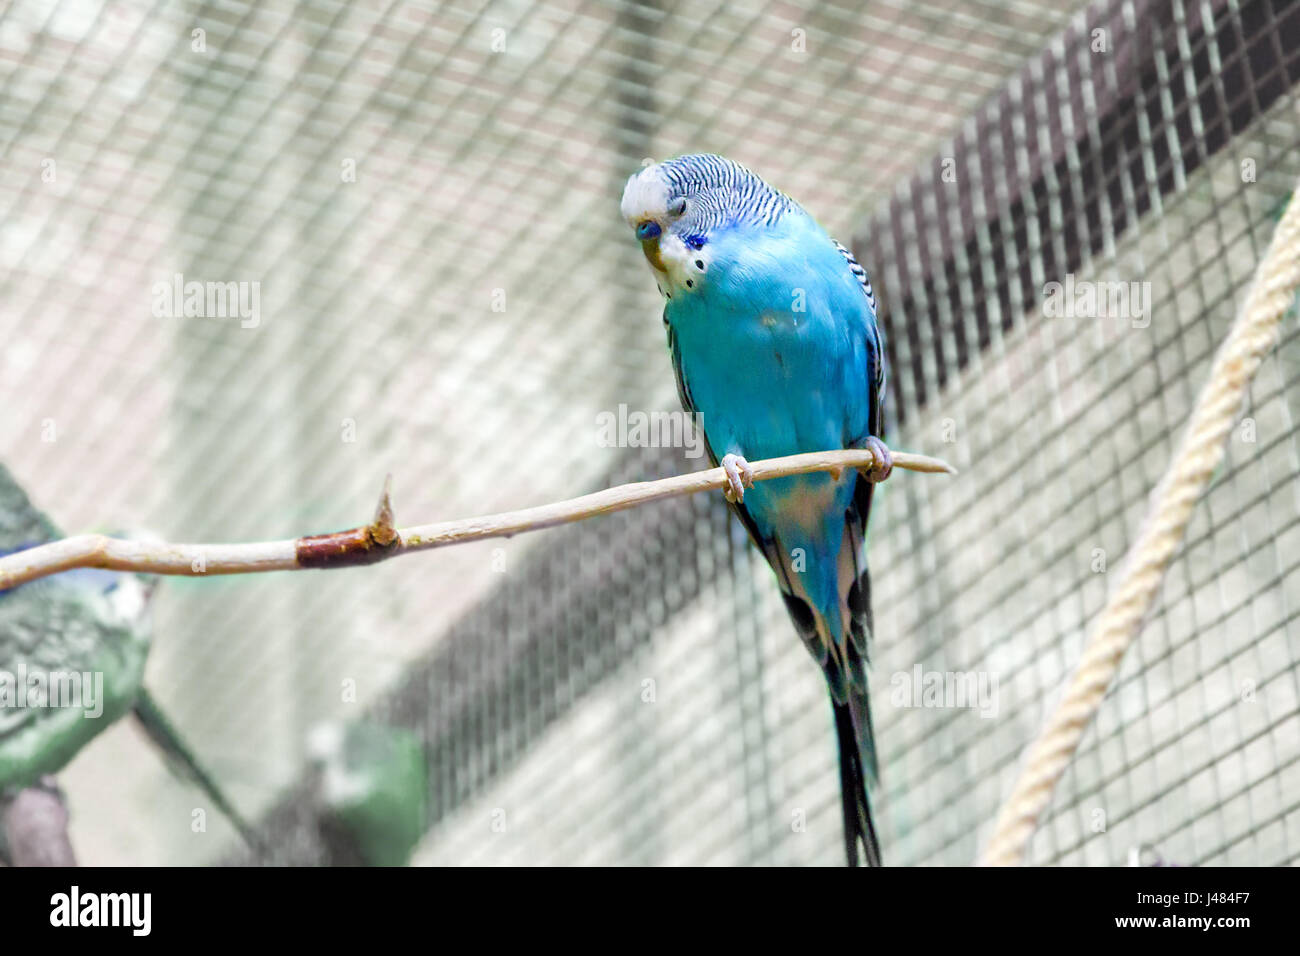 image animal small budgie sleeping on a branch - Stock Image